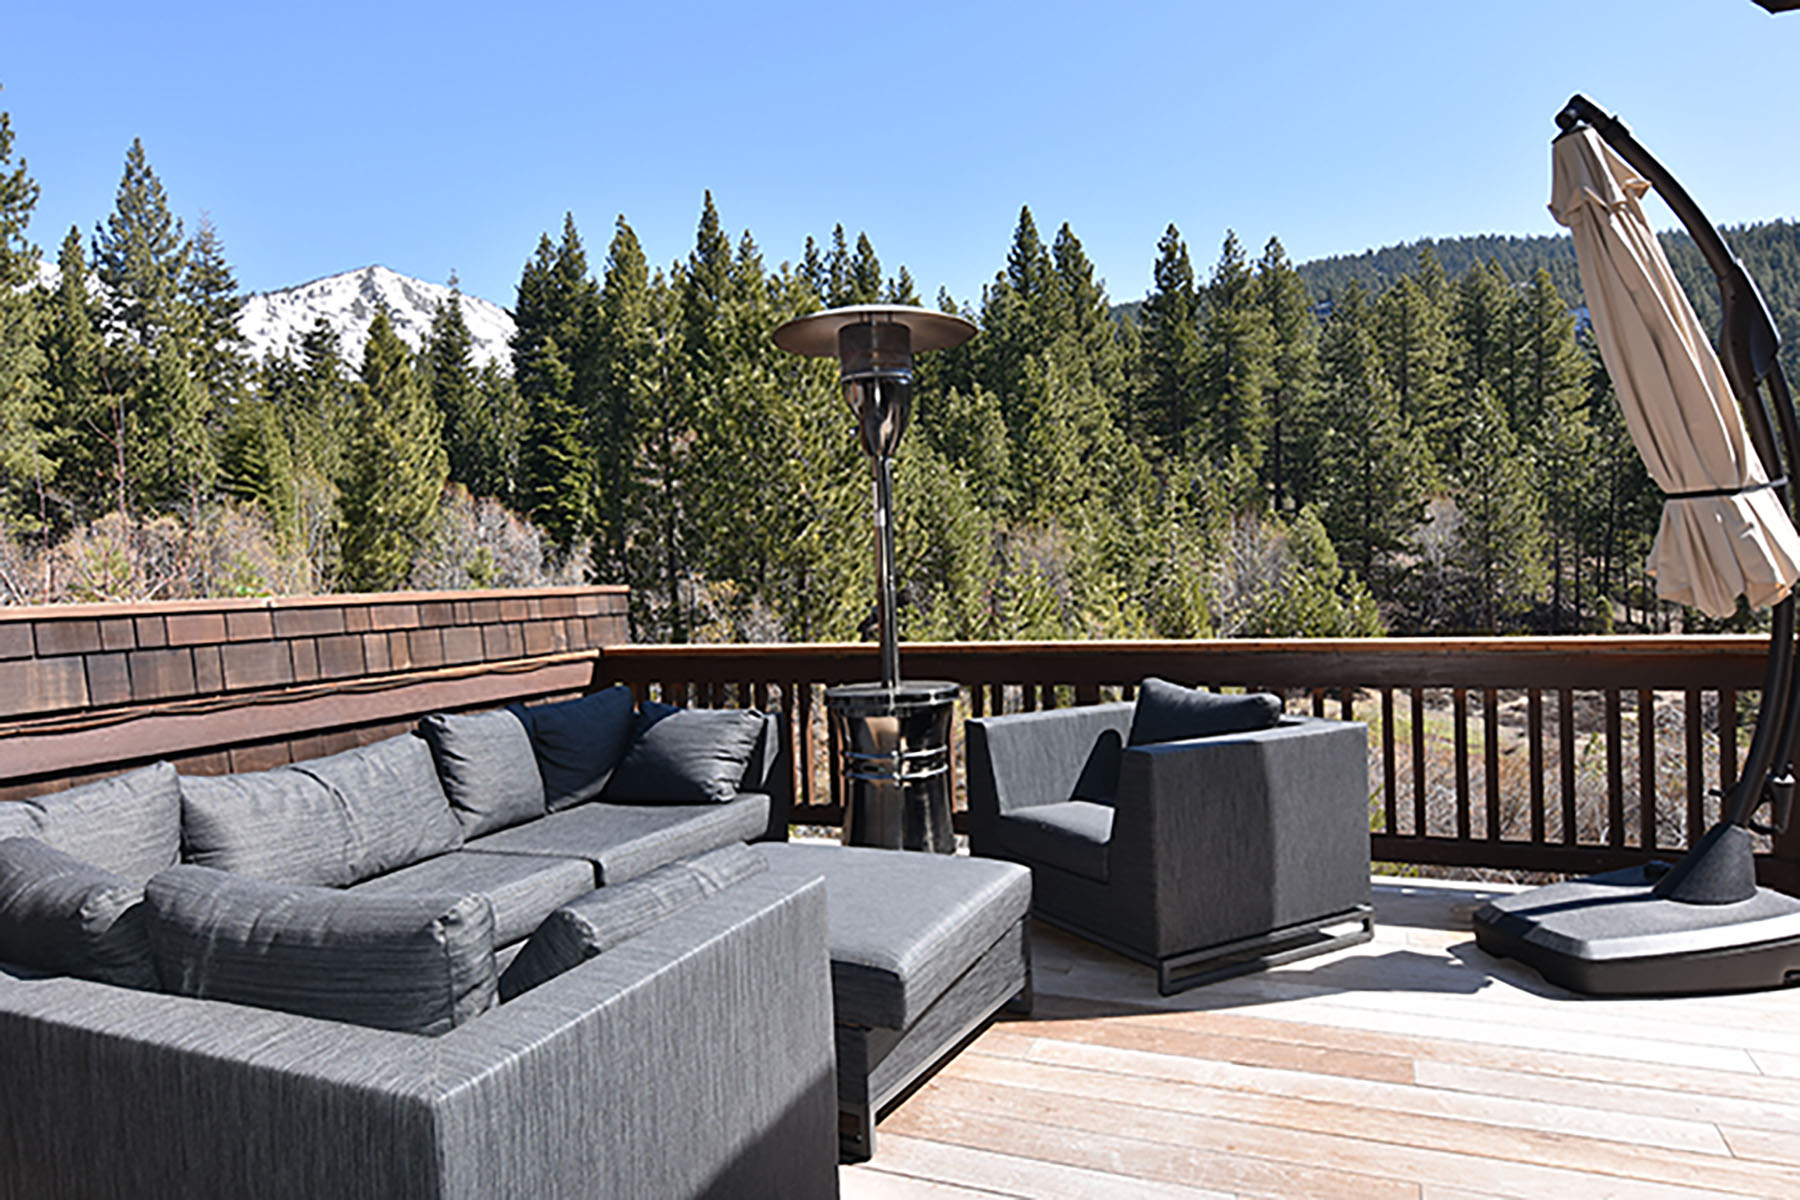 Additional photo for property listing at 898 Lake Country, Incline Village, Nevada 898 Lake Country Incline Village, Nevada 89451 United States